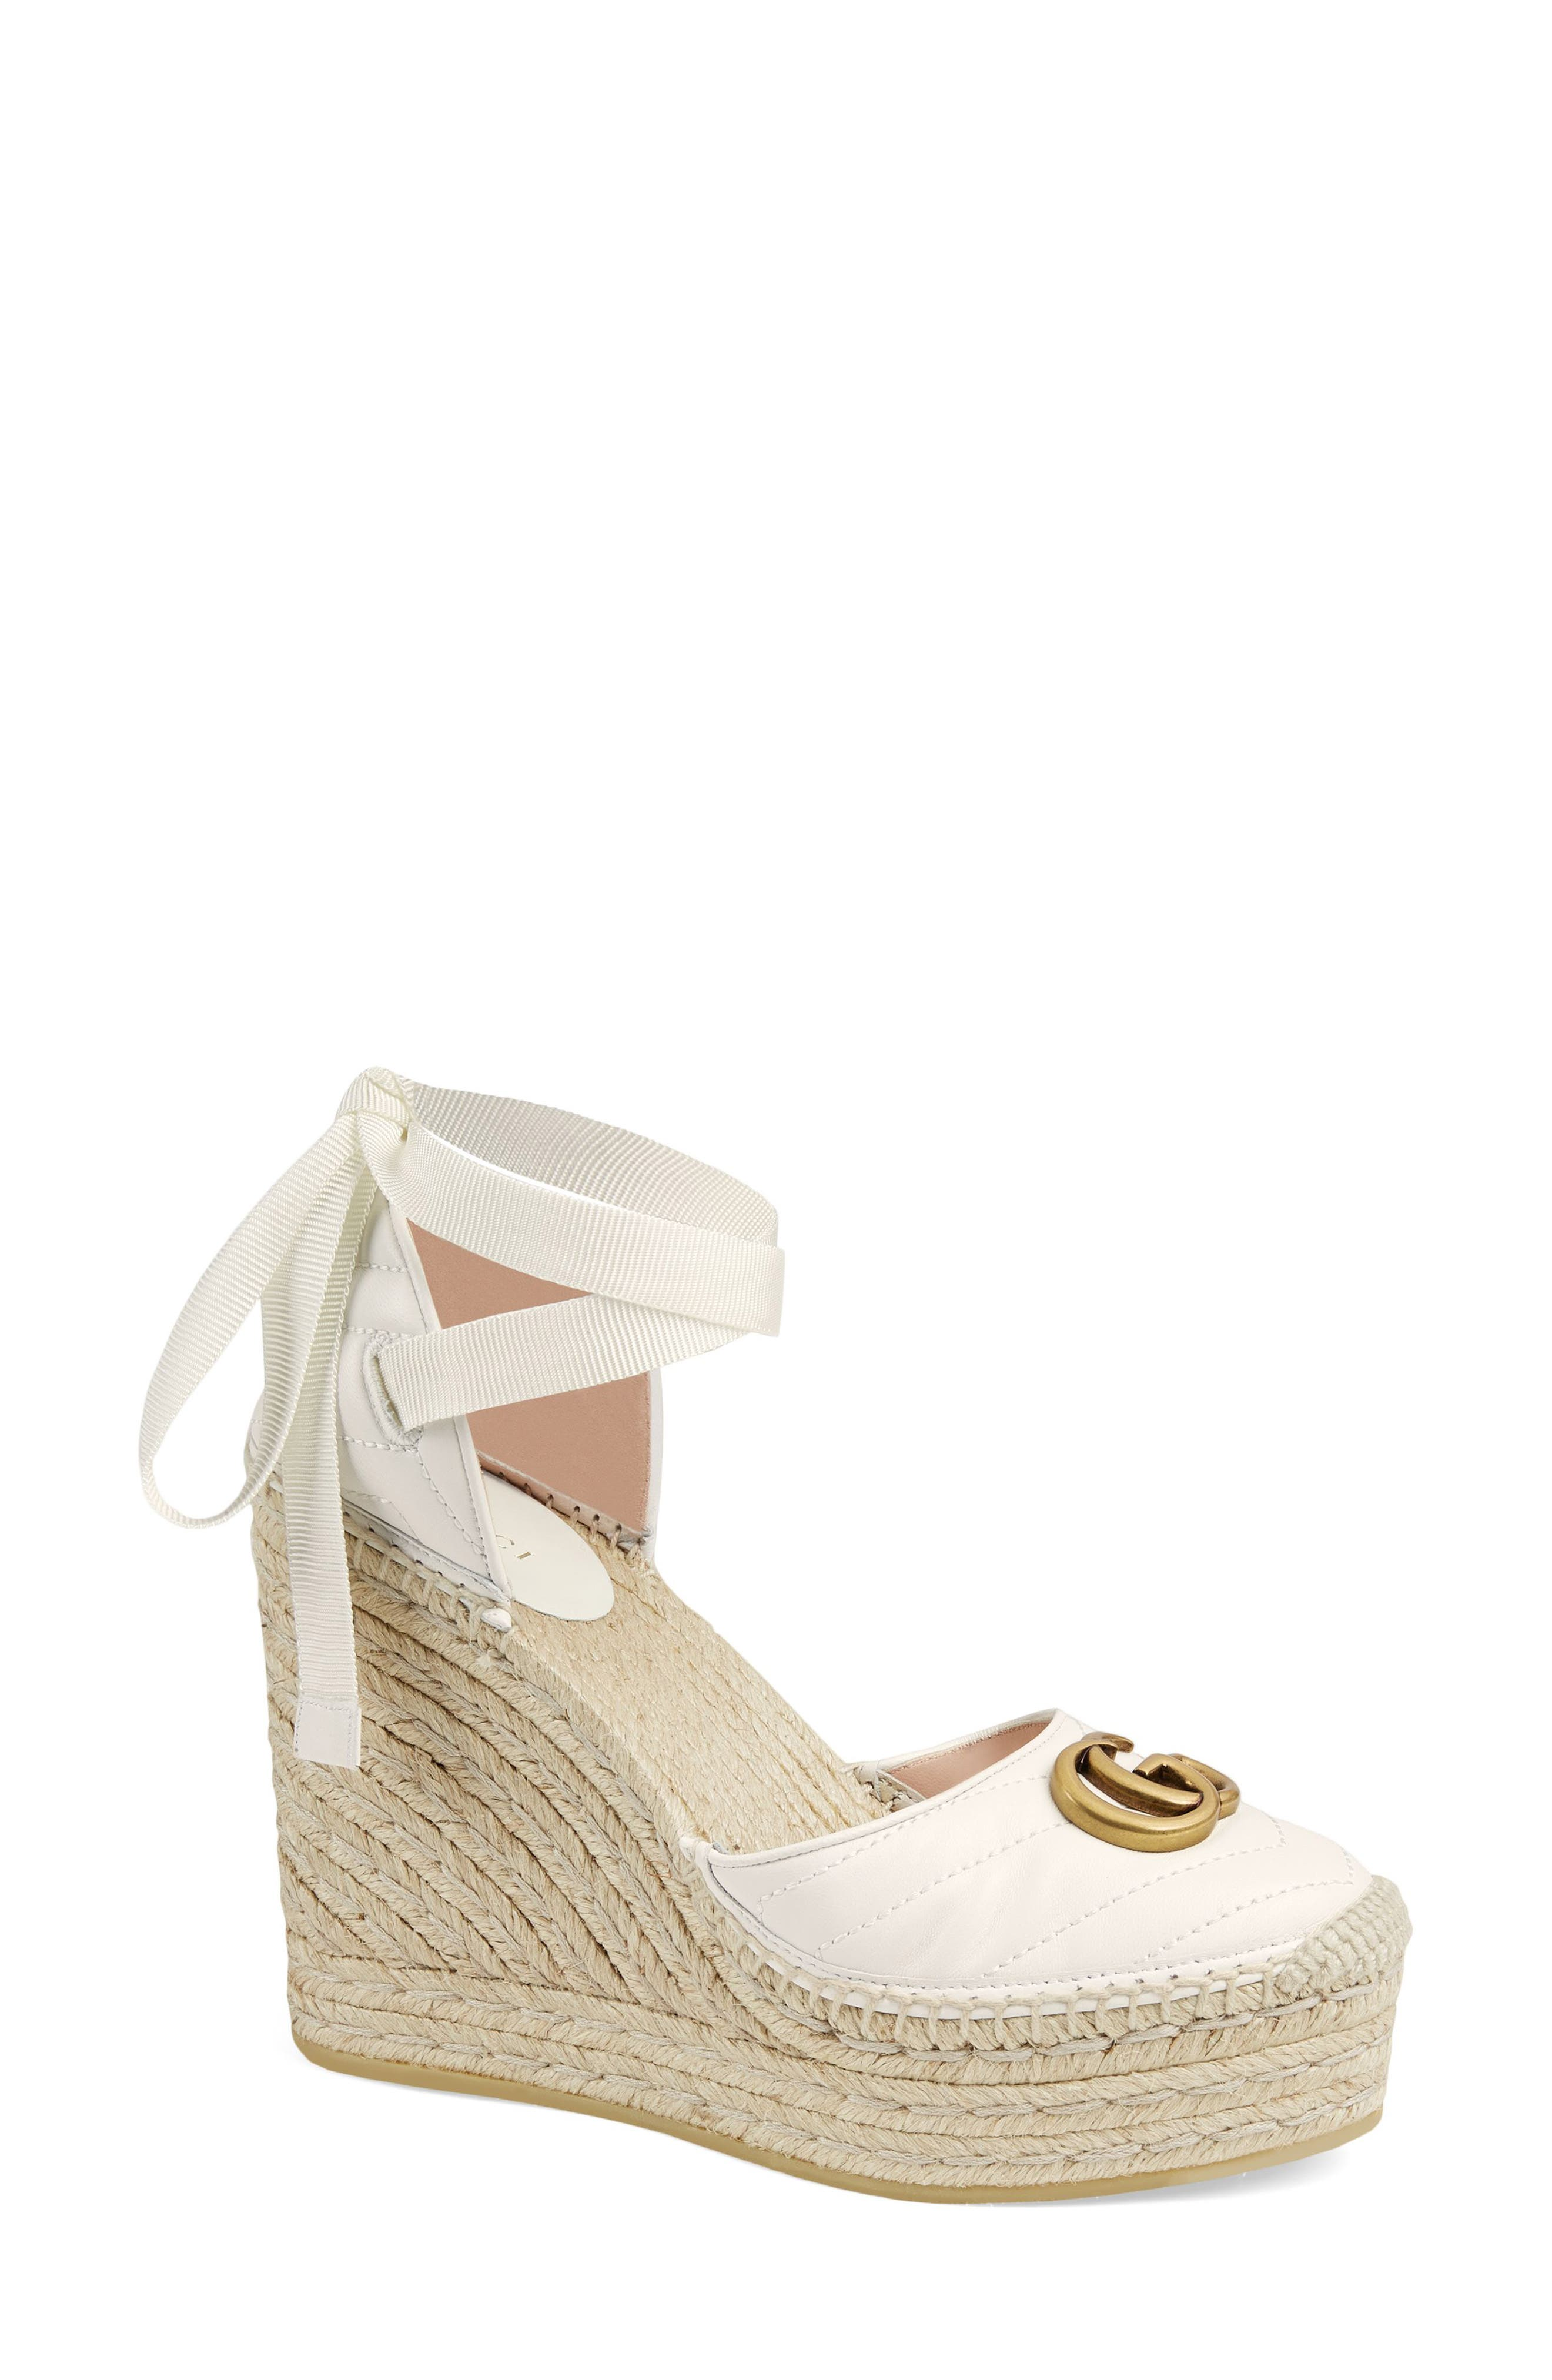 Gucci Palmyra Ankle Tie Espadrille Wedge (Women)